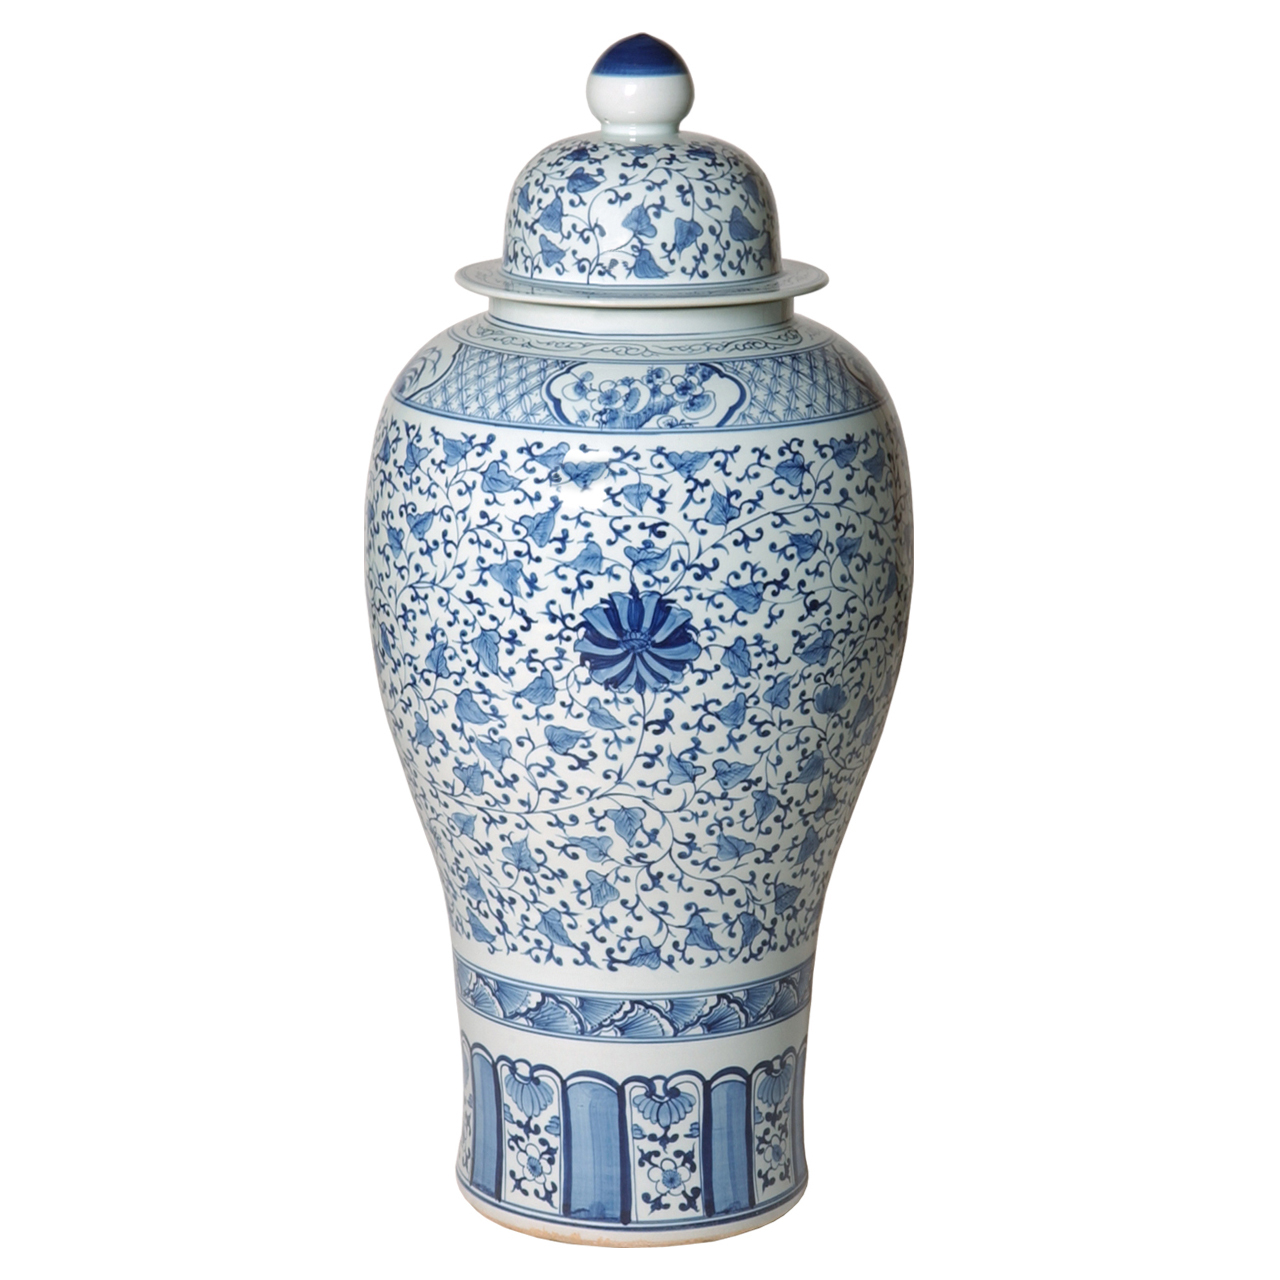 Foliage Global Bazaar Blue Ceramic Ginger Jar - 38H